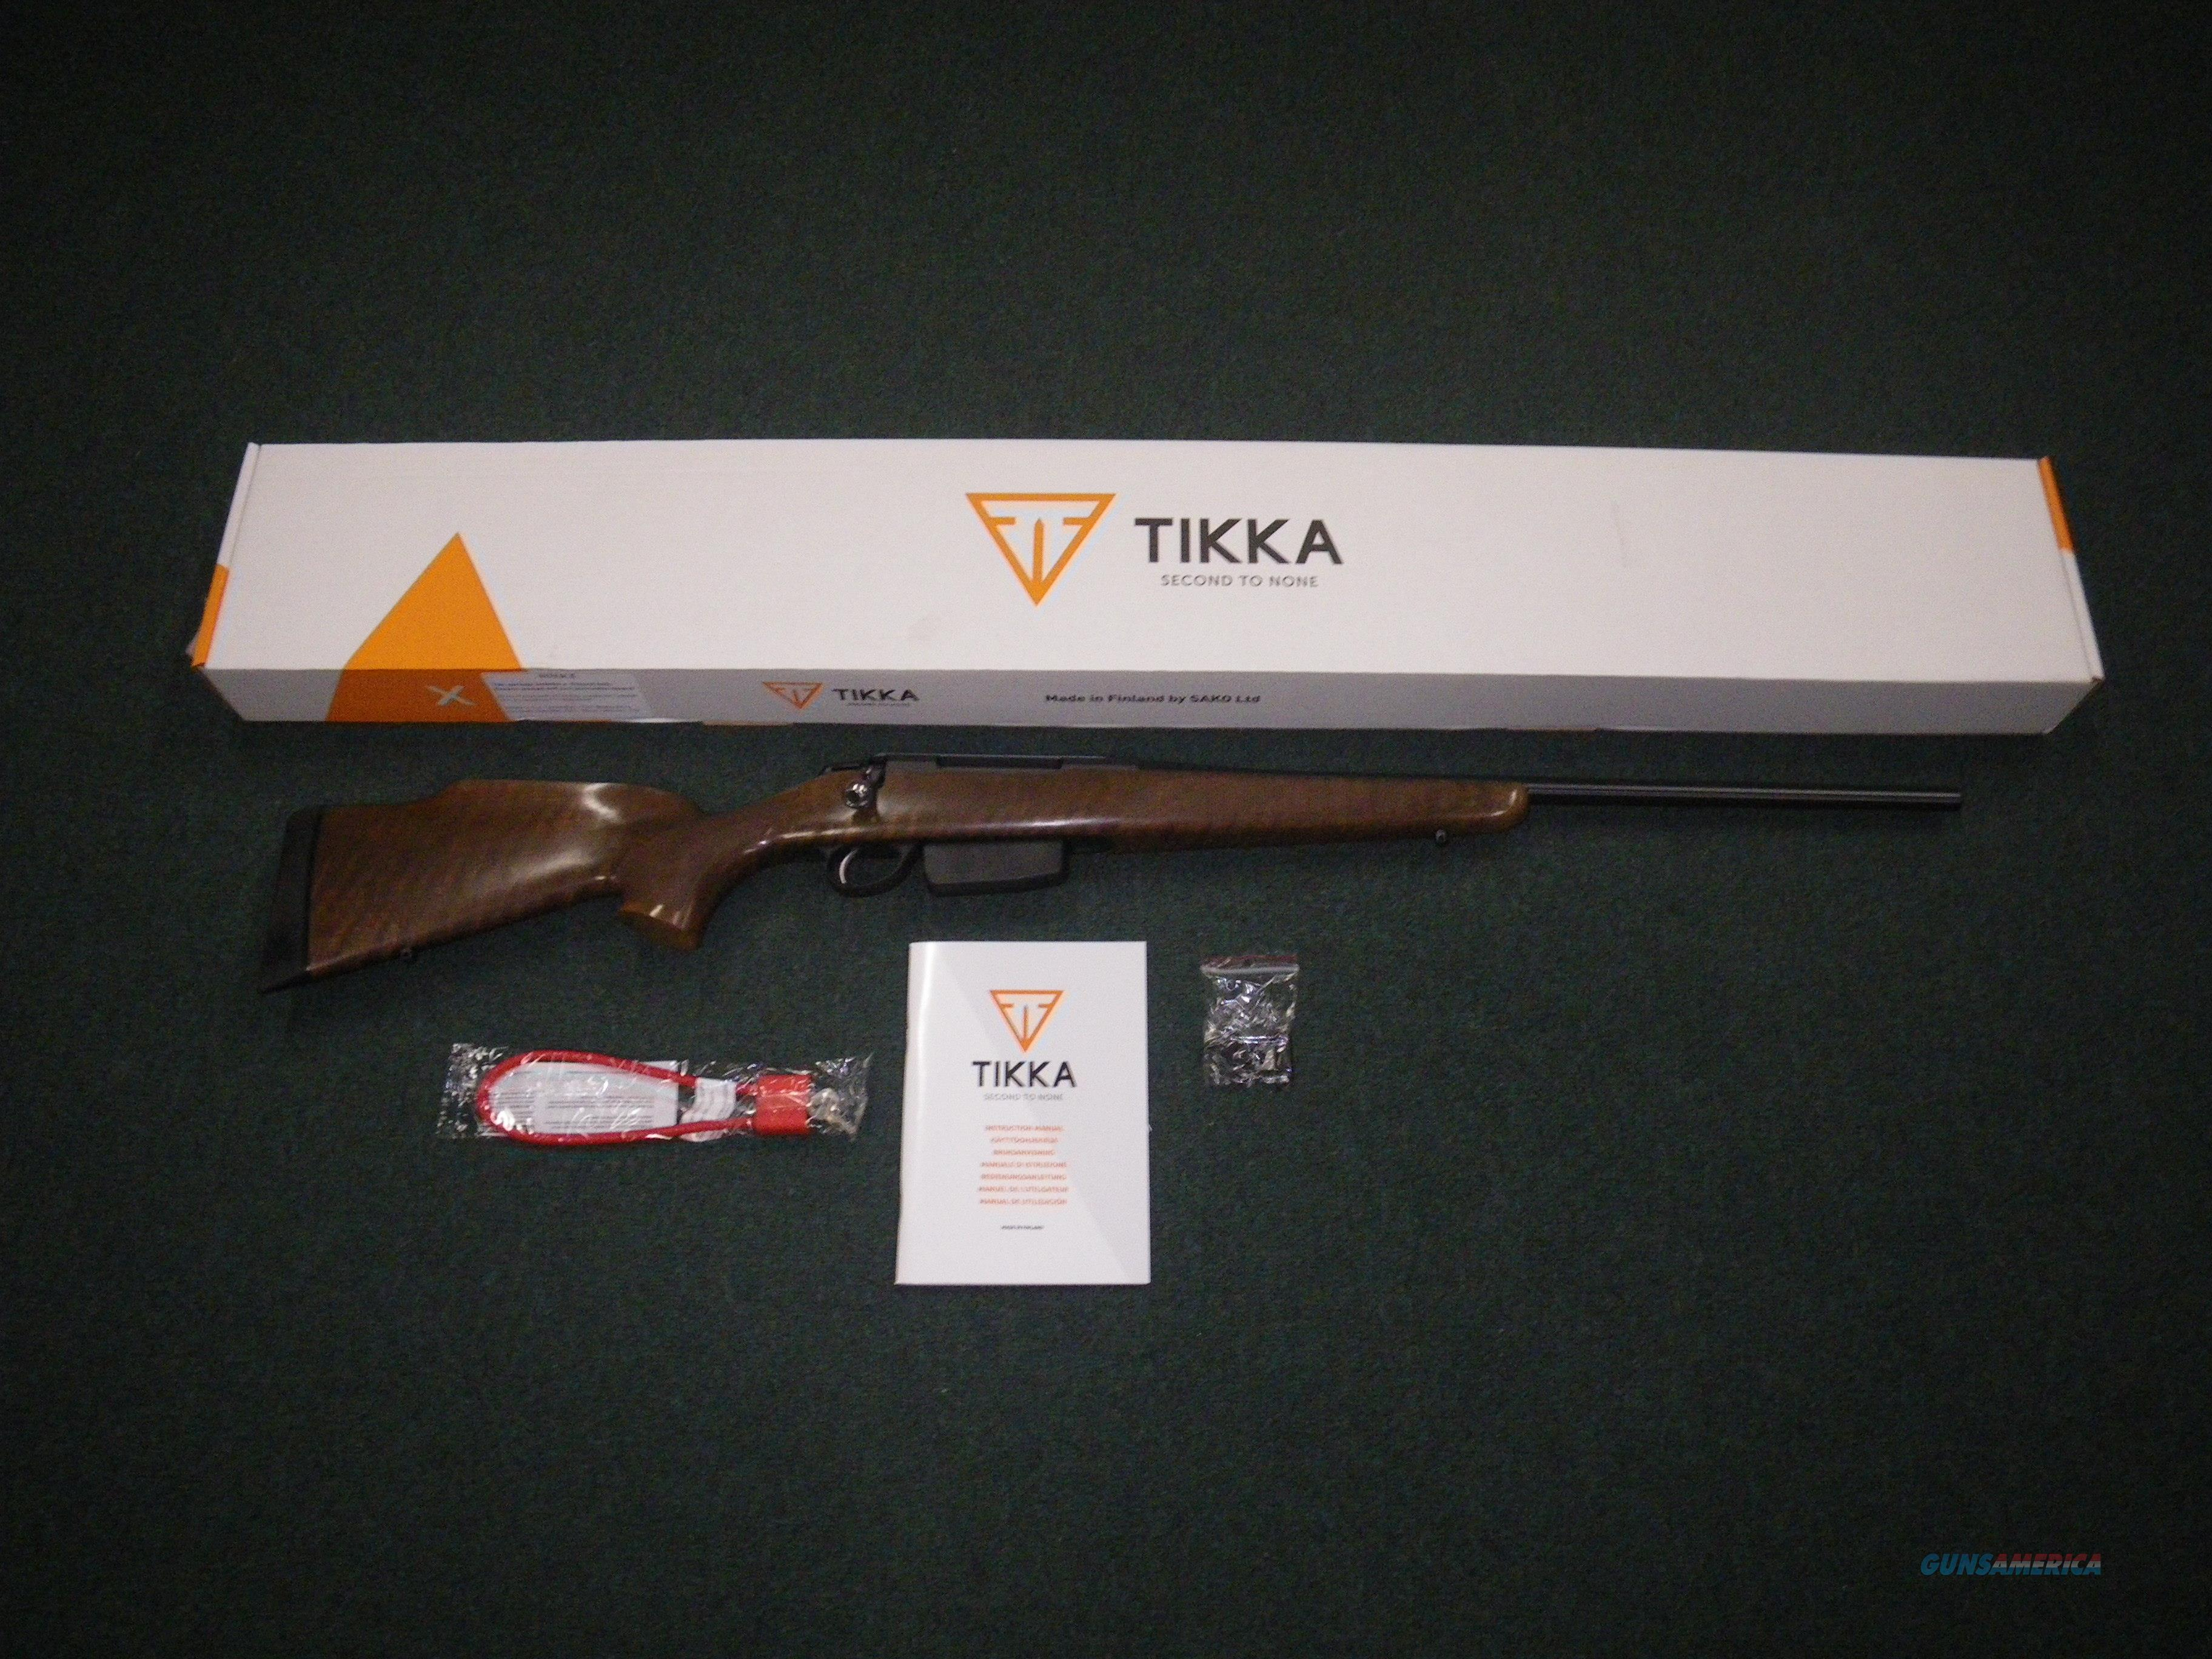 "Tikka T3x Forest Wood 300 Win Mag 22.4"" NEW JRTXF631  Guns > Rifles > Tikka Rifles > T3"